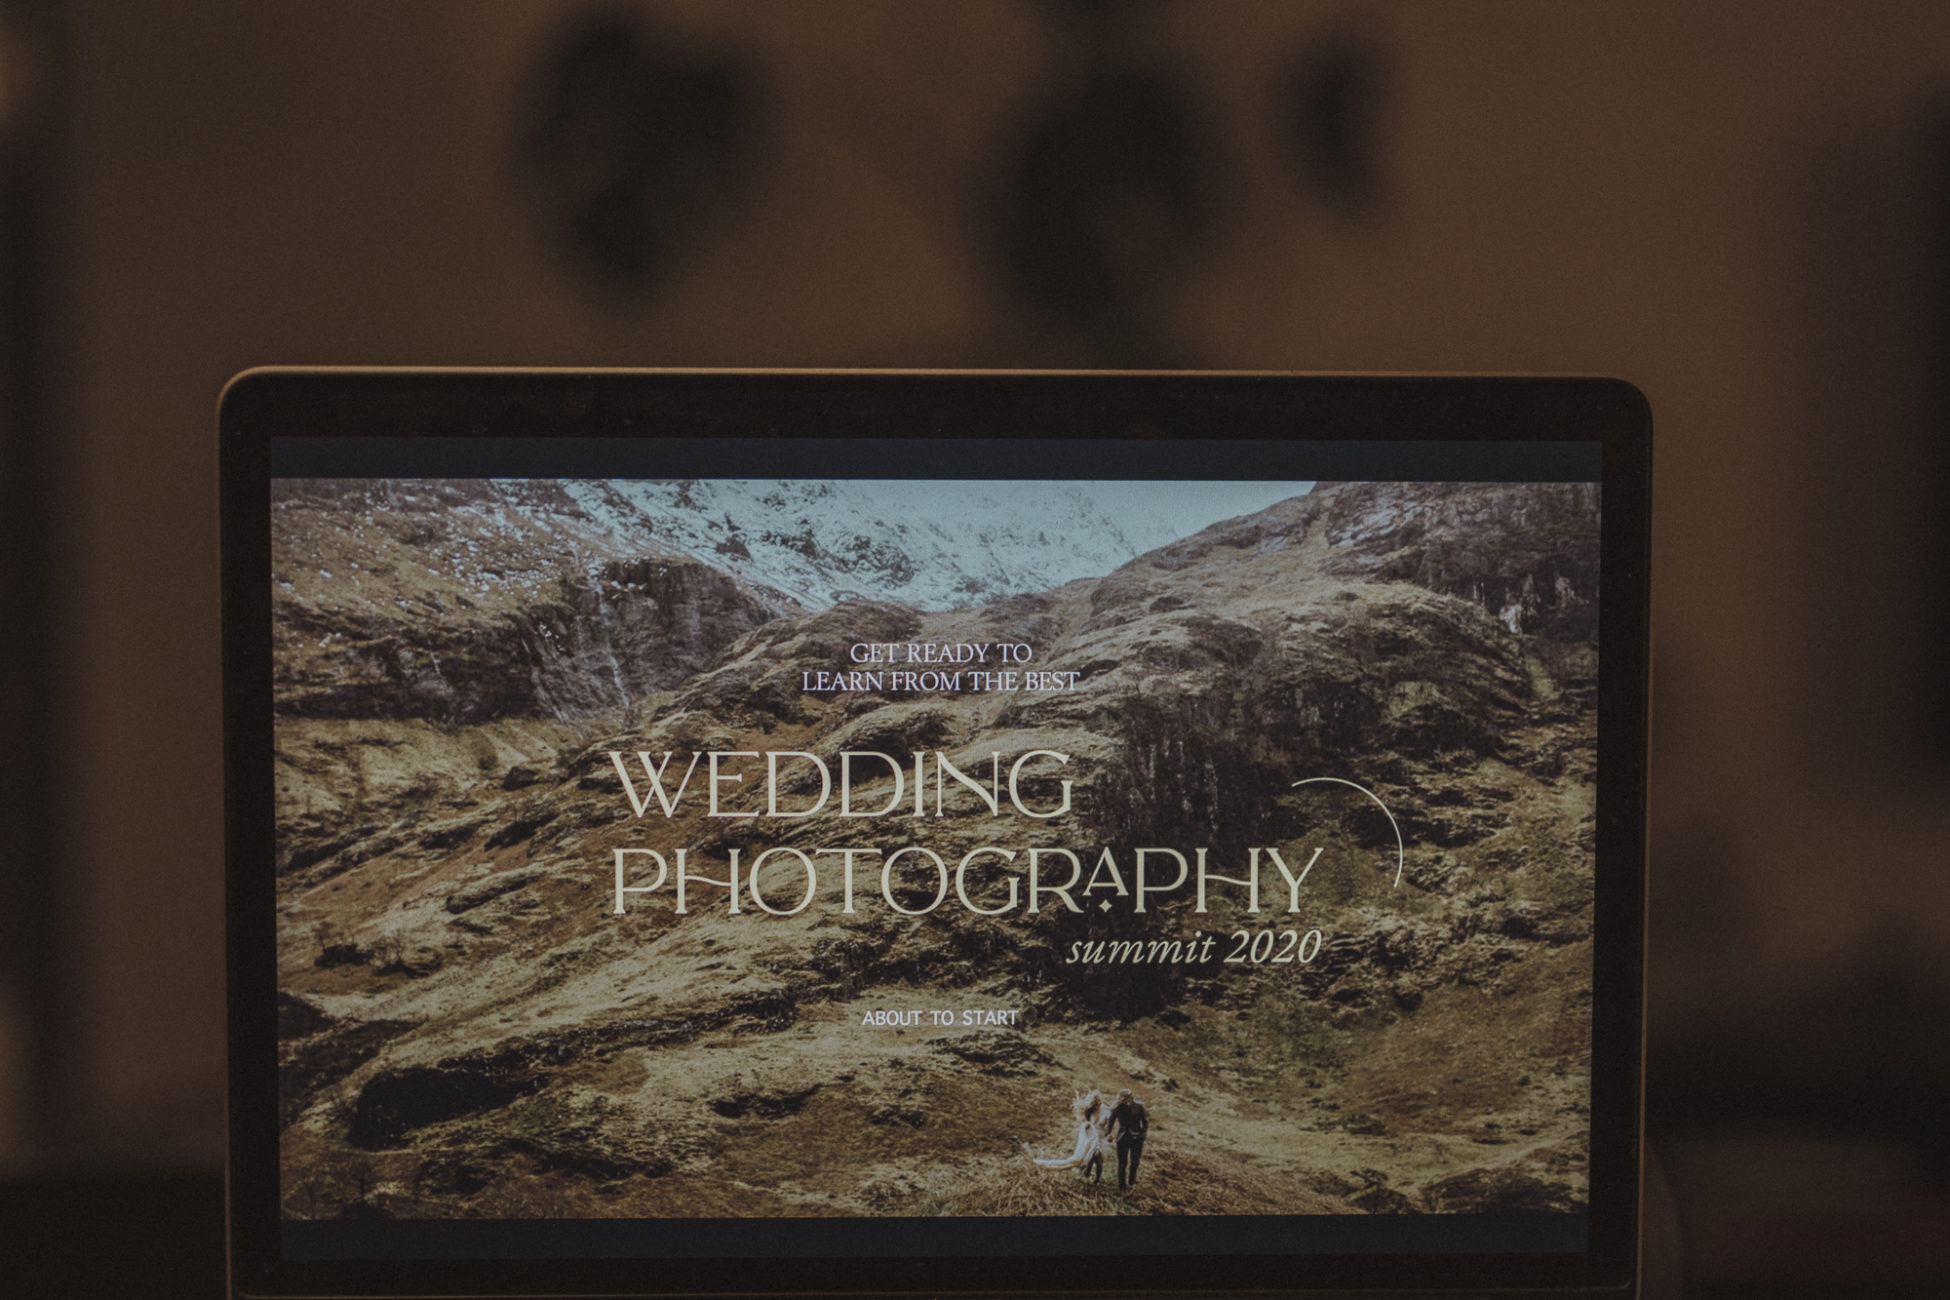 wedding photography summit 2020